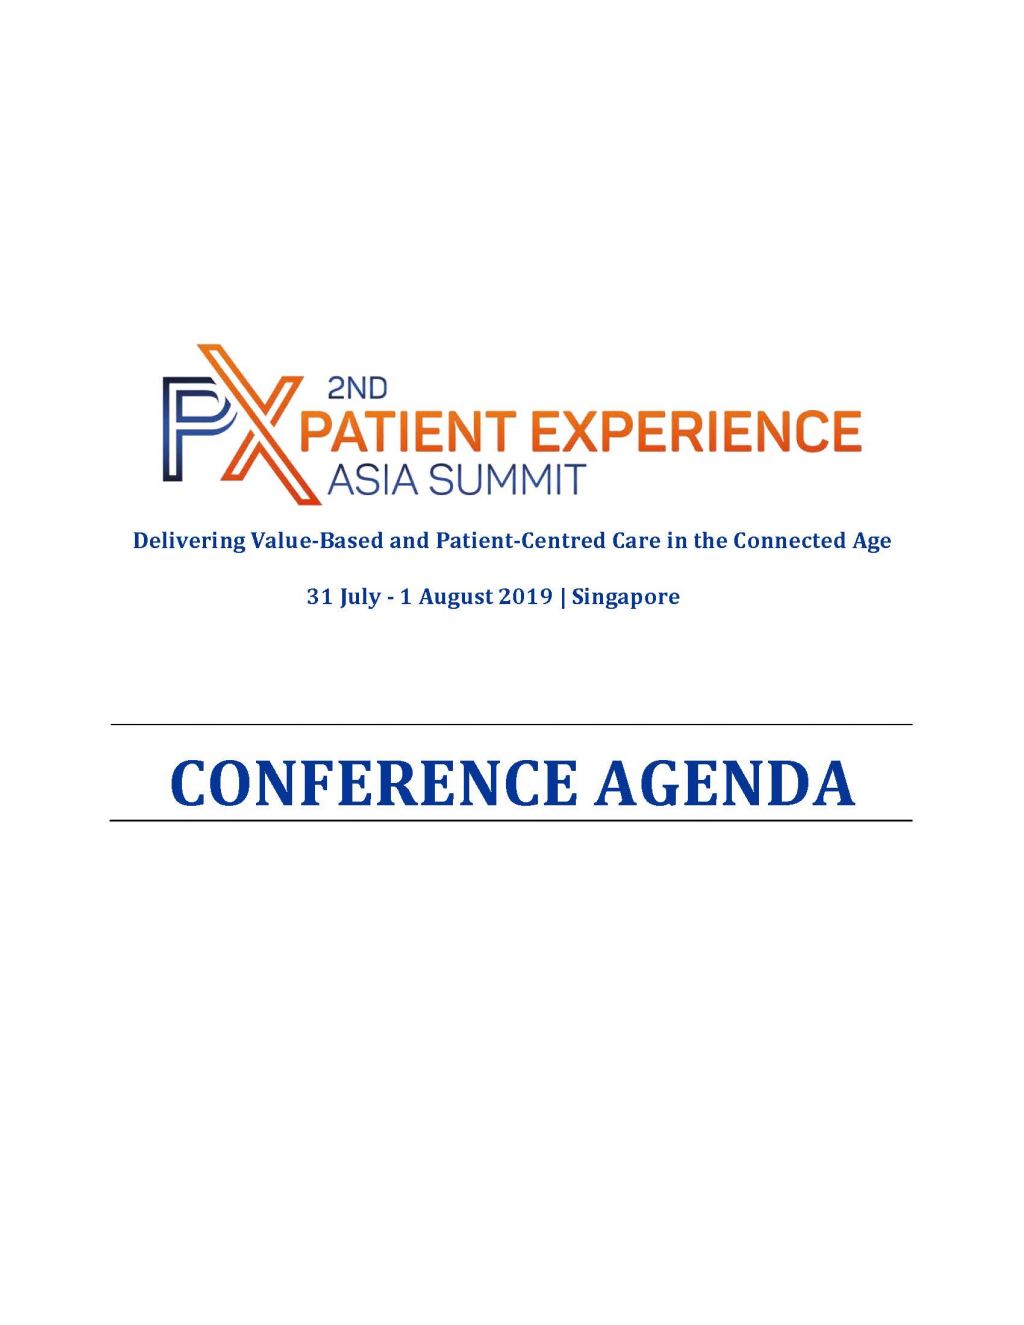 View the Agenda - Patient Experience Asia Summit 2019